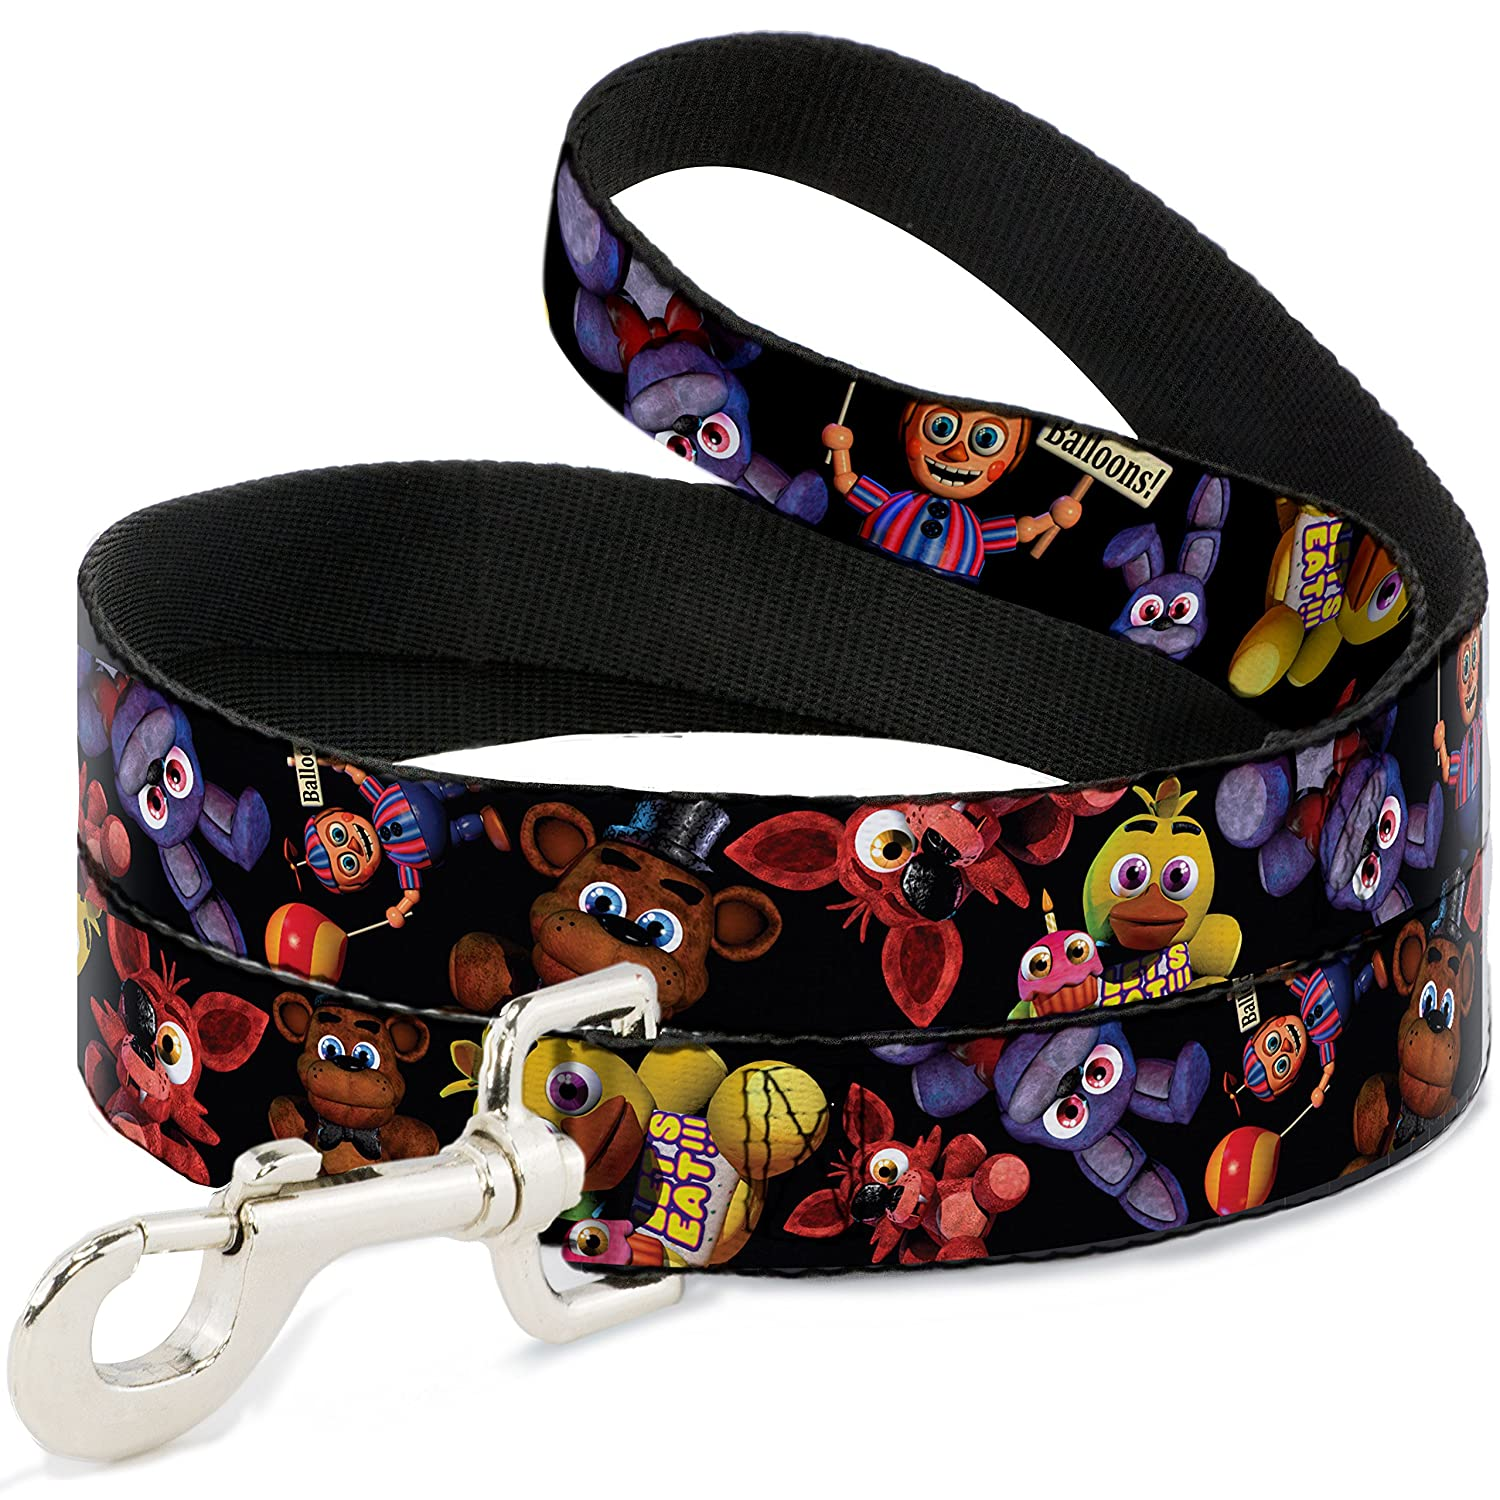 6Ft. Long  1.0 Inches wide Regular Buckle-Down Five Nights at Freddy's 4 Plushies Scattered Black  Dog Leash, 6'